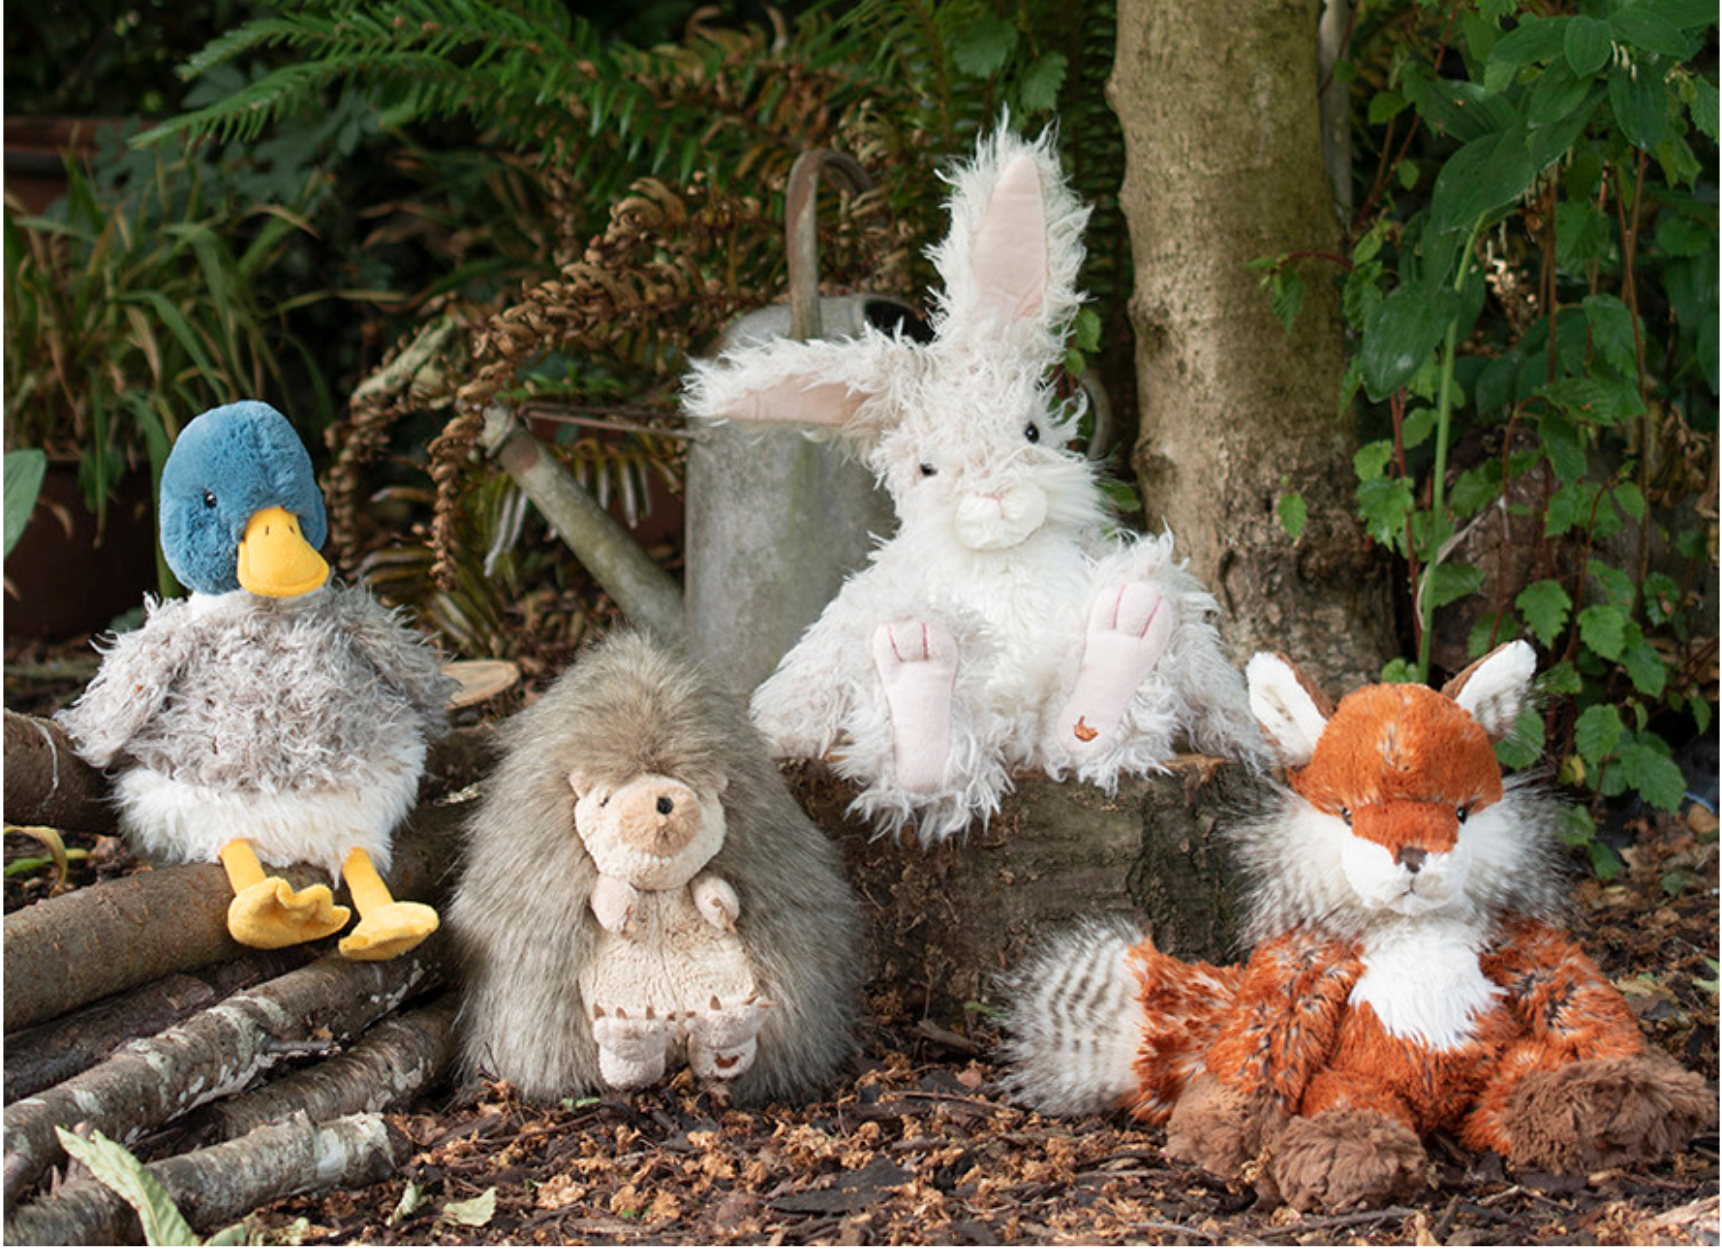 Above: Tomorrow (Wednesday July 23) sees the launch of Wrendale's new Country Set plush at Home & Gift Virtual.